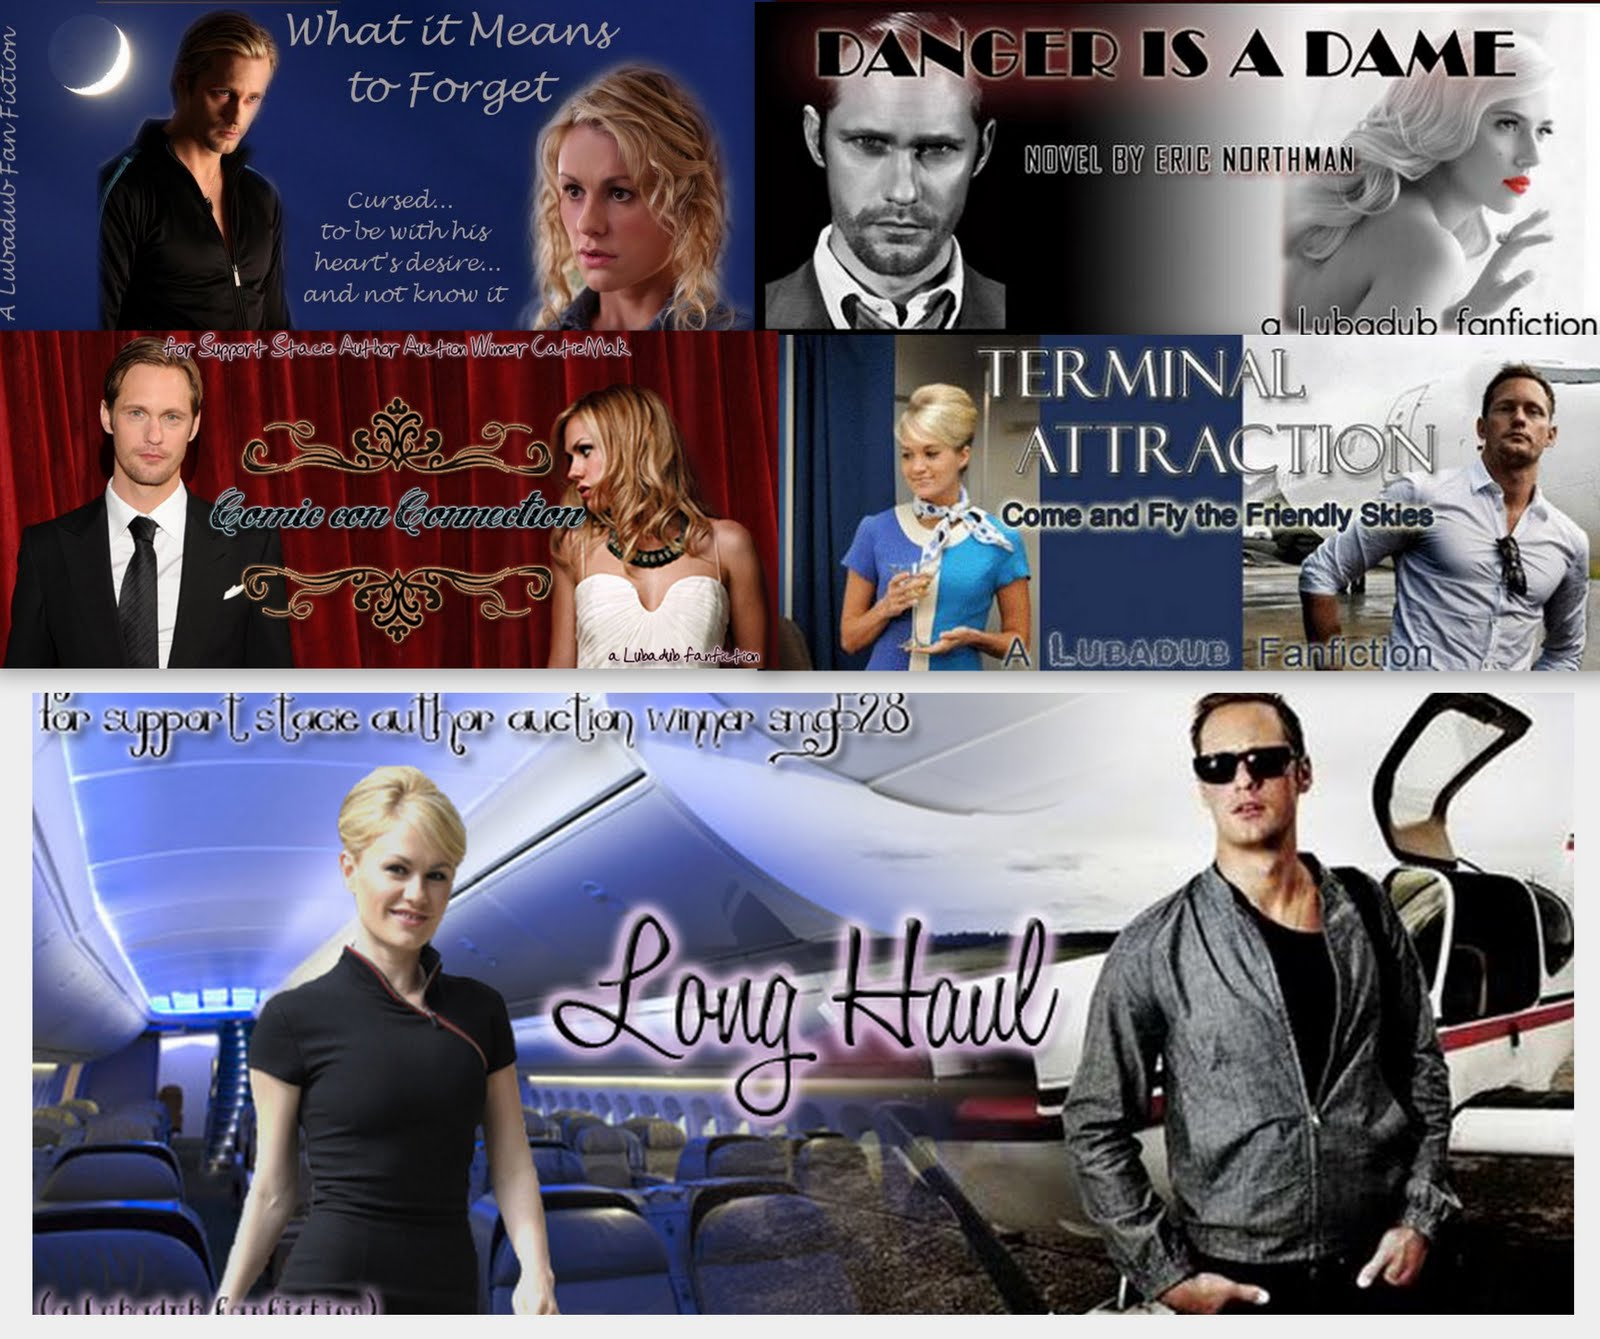 Fanfiction Unleash Your Imagination http://migirdic.myblog.it/archive/2011/09/27/southern-vampire-series-fanfiction.html